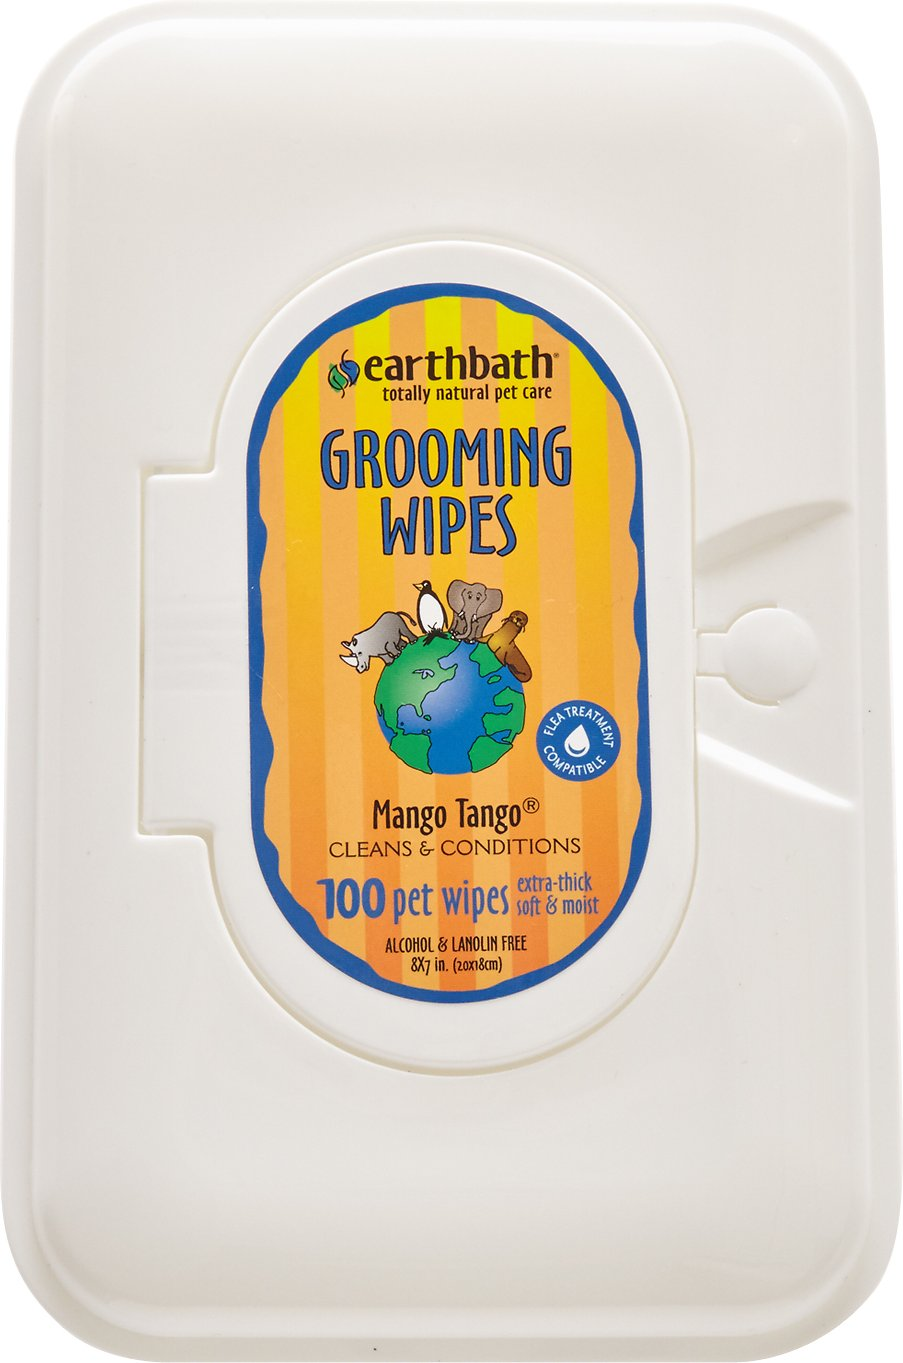 Earthbath Grooming Wipes for Dogs & Cats, Mango Tango, 100-count (Size: 100-count) Image